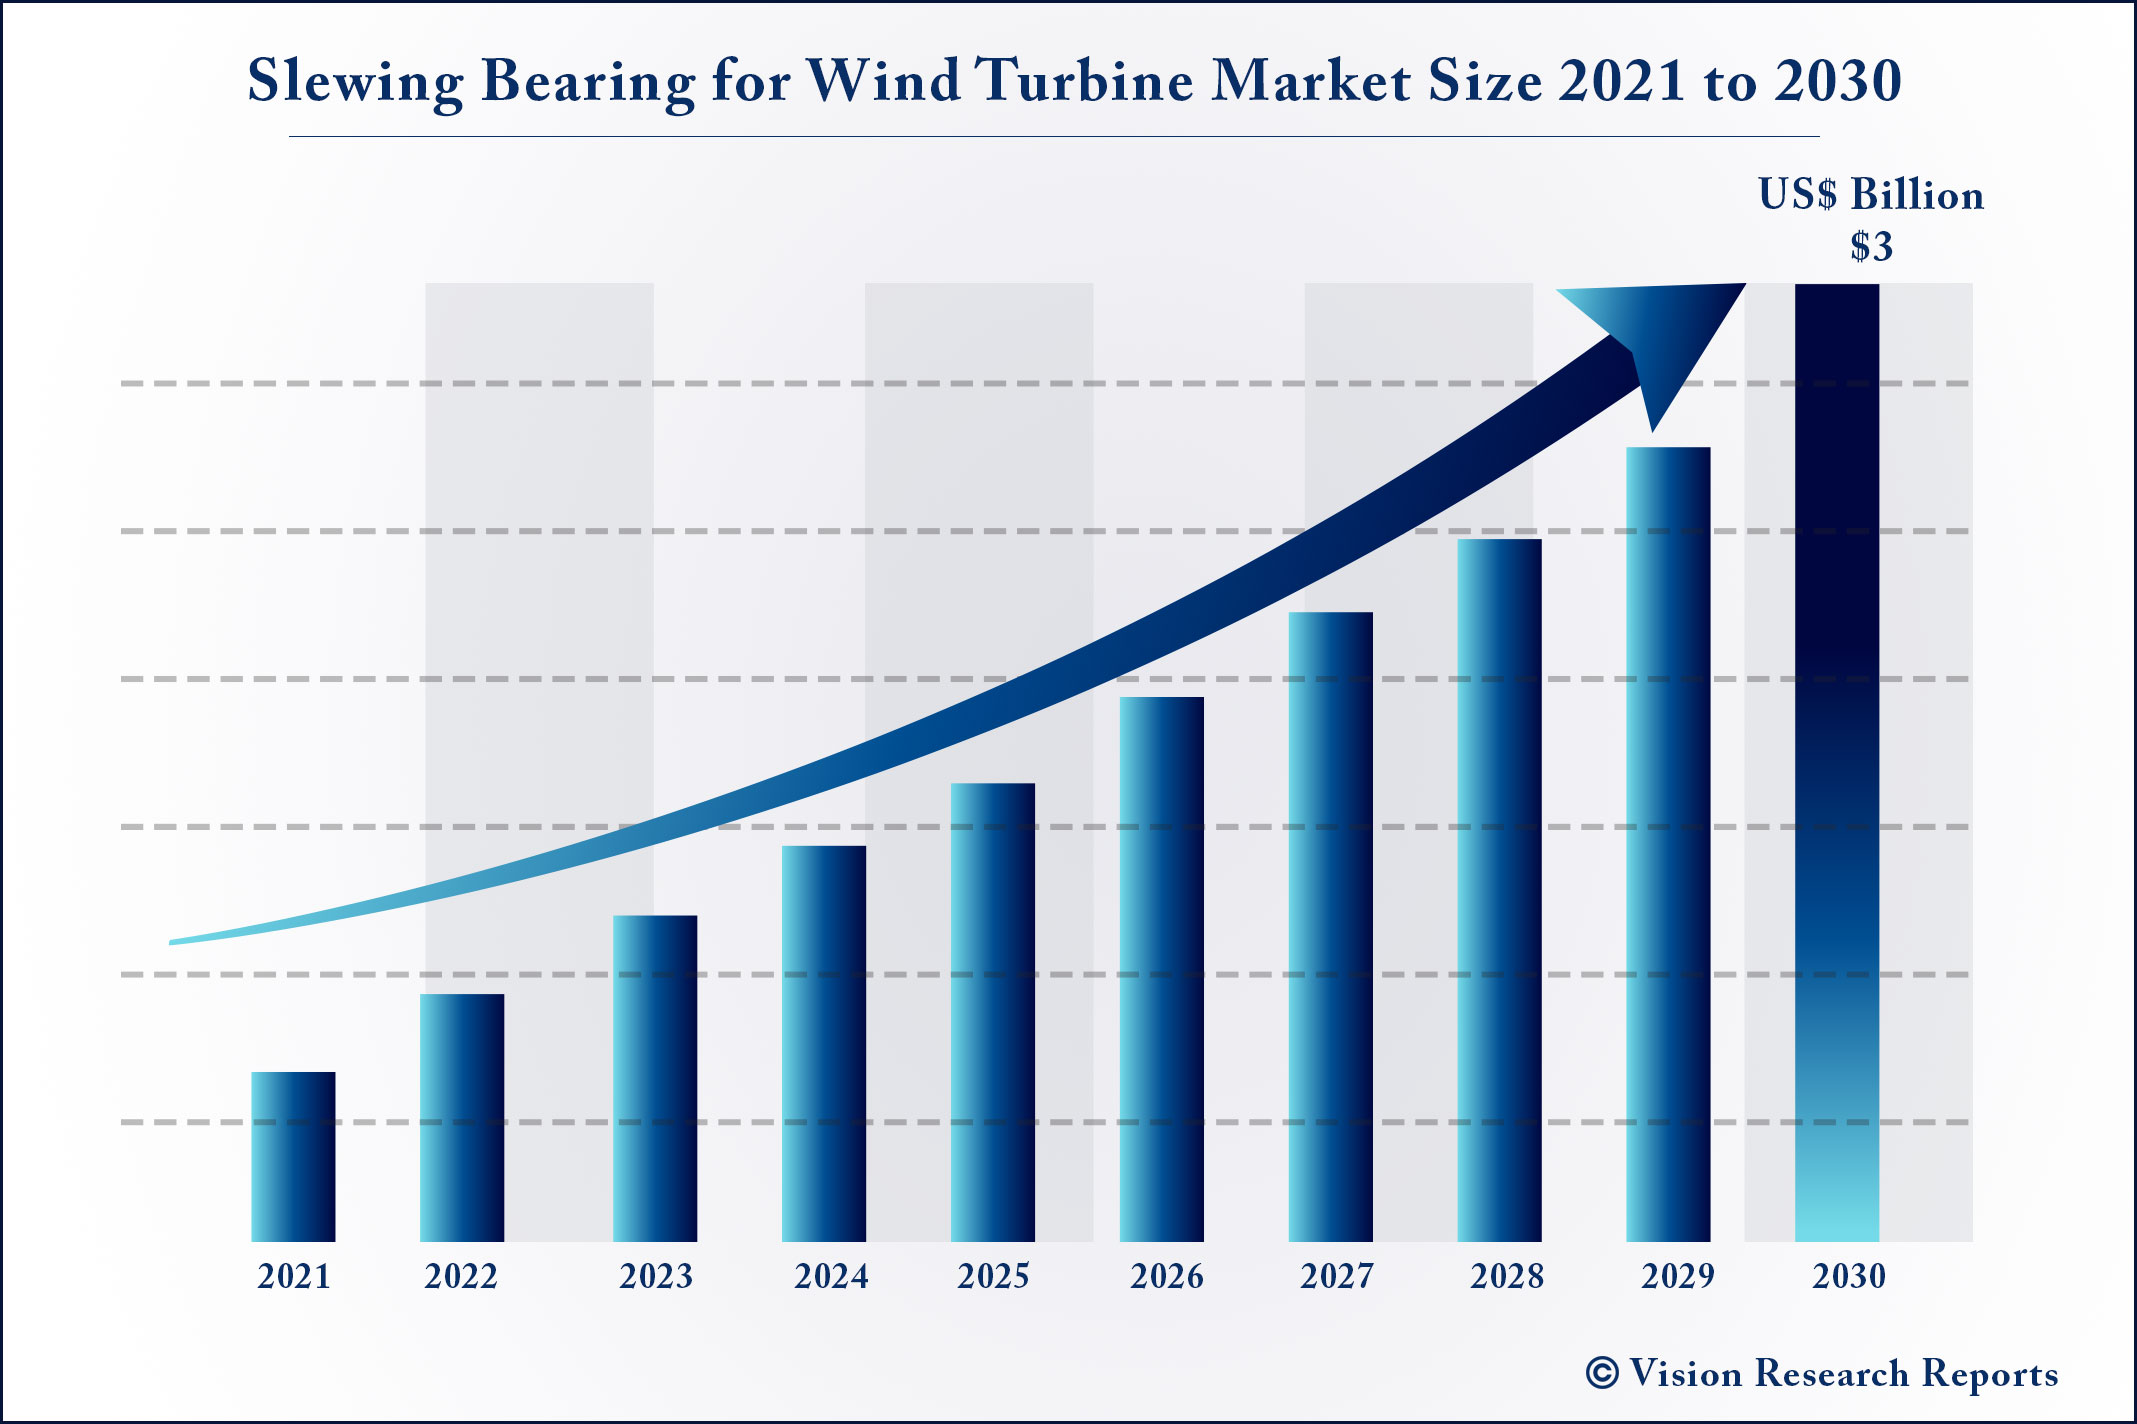 Slewing Bearing for Wind Turbine Market Size 2021 to 2030